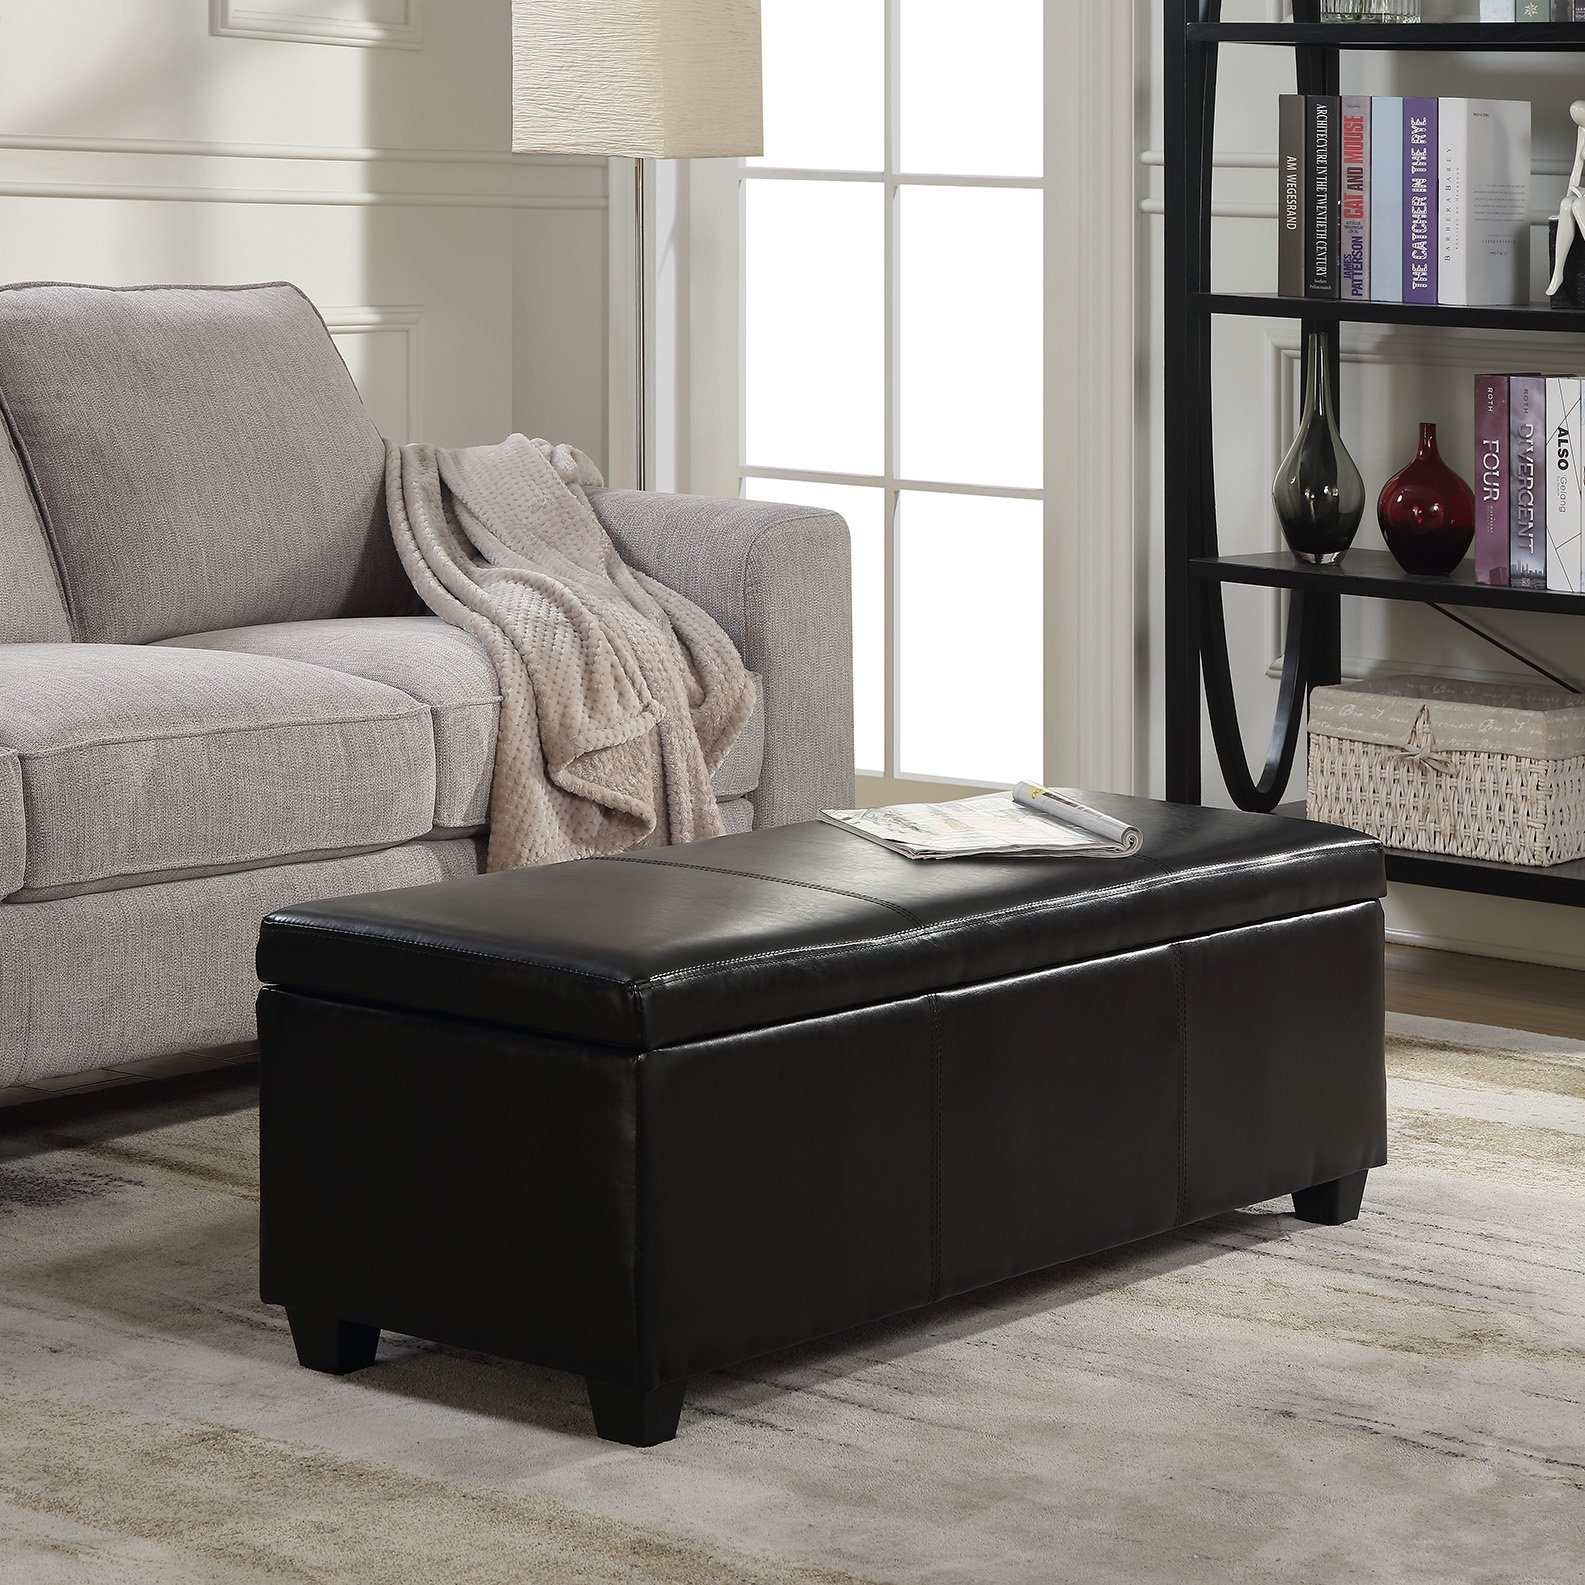 Belleze 48'' inch Long Rectangular Upholstered Storage Elegant Ottoman Bench, Black by Belleze